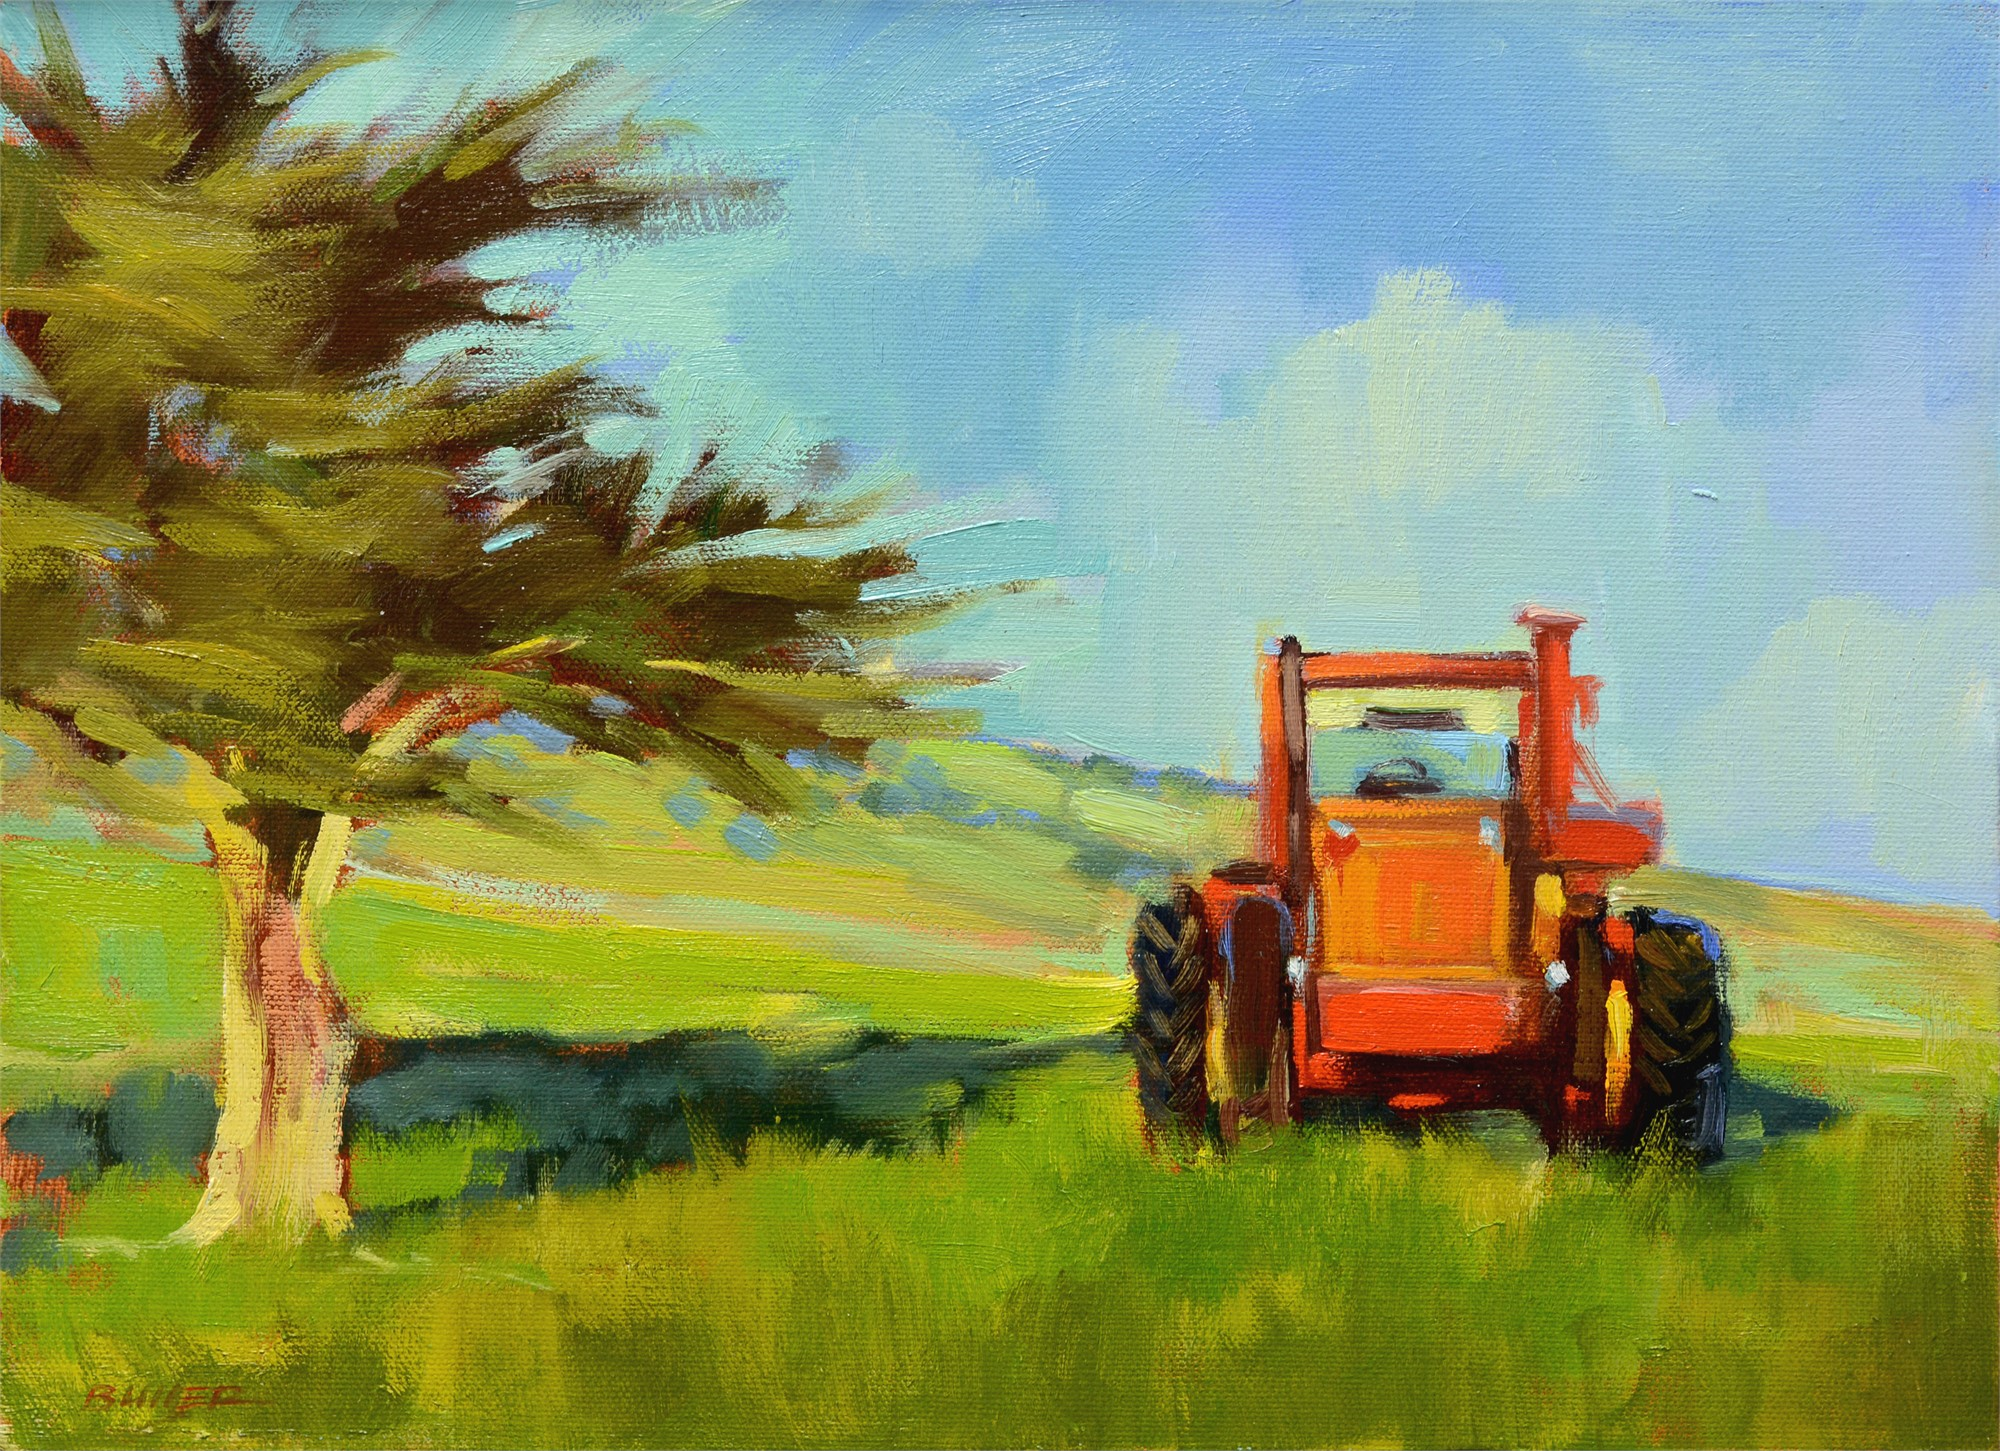 Working Tractor by Samantha Buller